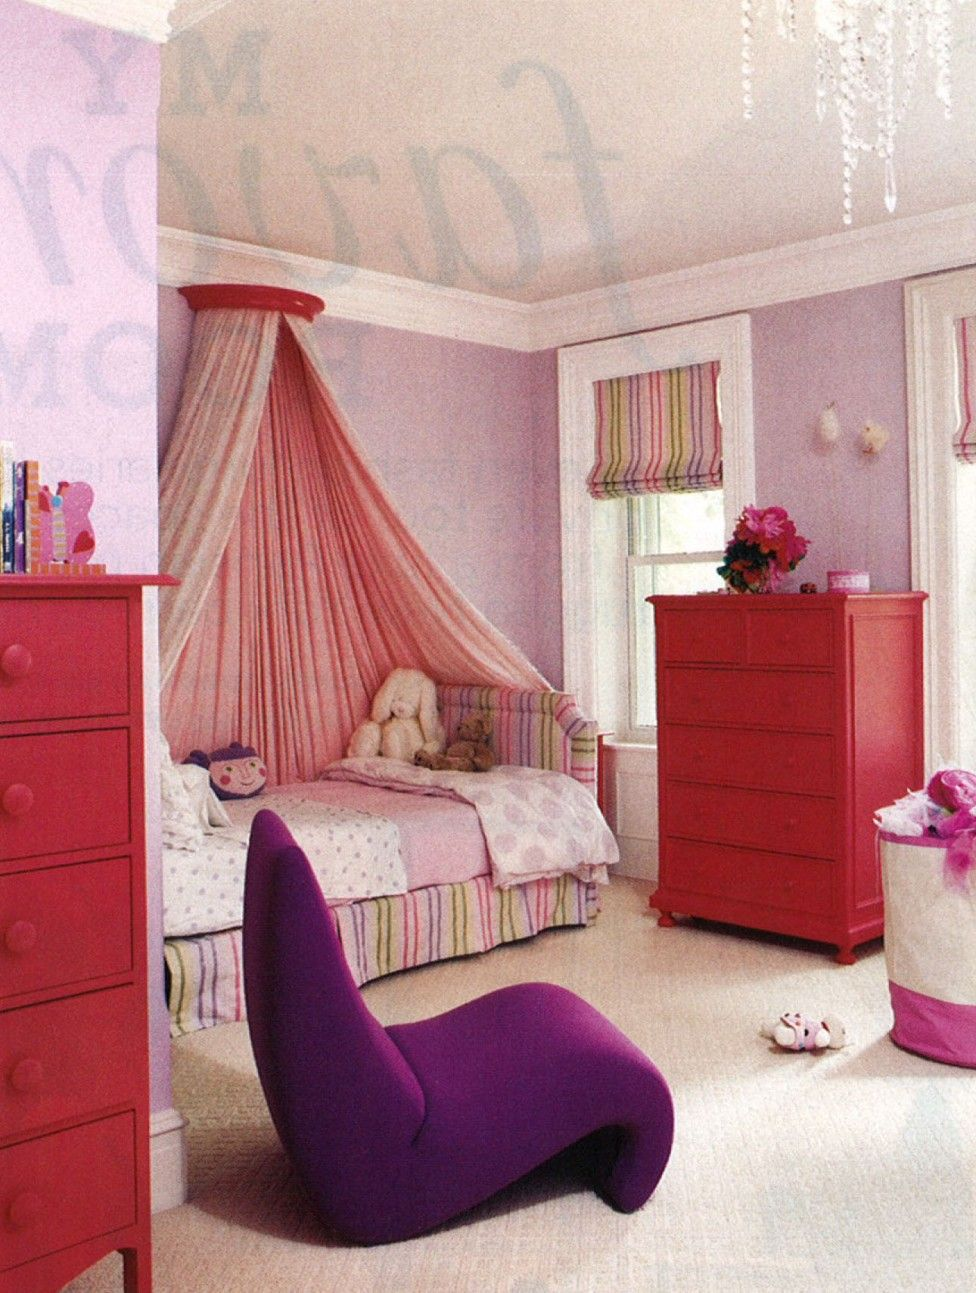 6 Year Bedroom Boy: Comely Girls Room Bedroom Pretty Girls Room Design Eas